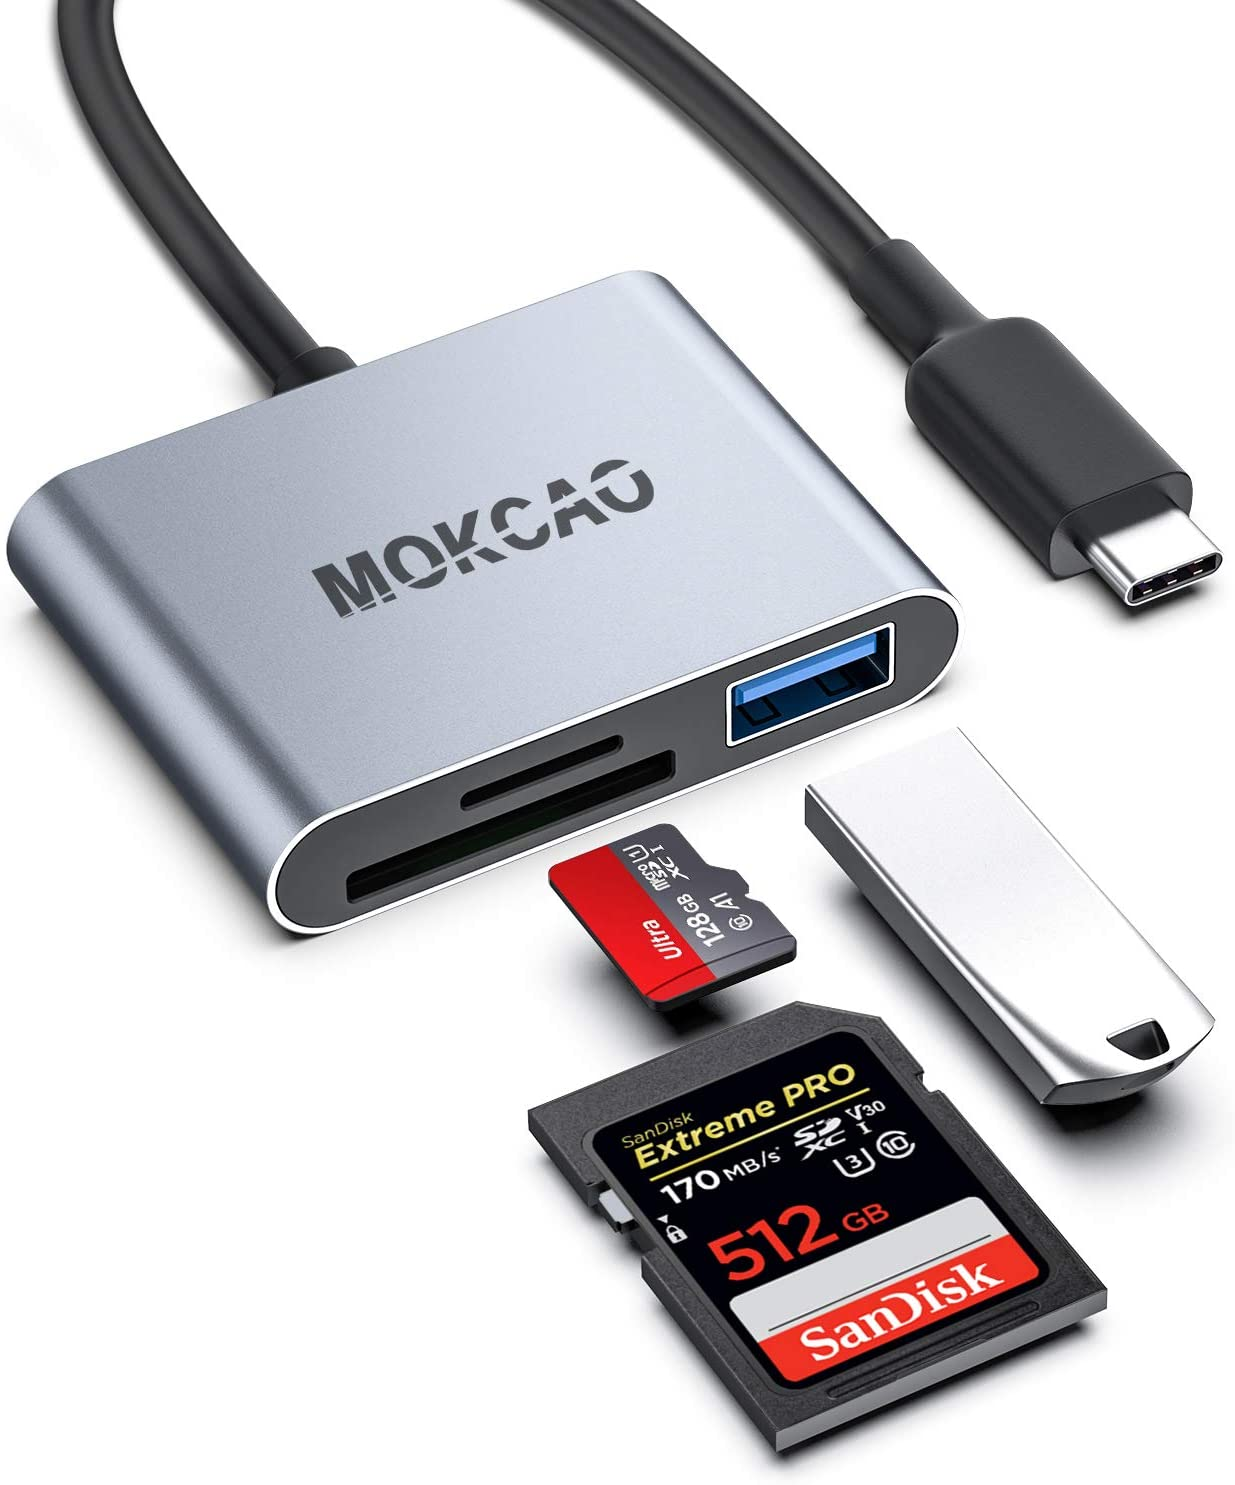 PRO USB 3.0 Card Reader Works for Samsung Galaxy Note 3 Adapter to Directly Read at 5Gbps Your MicroSDHC MicroSDXC Cards